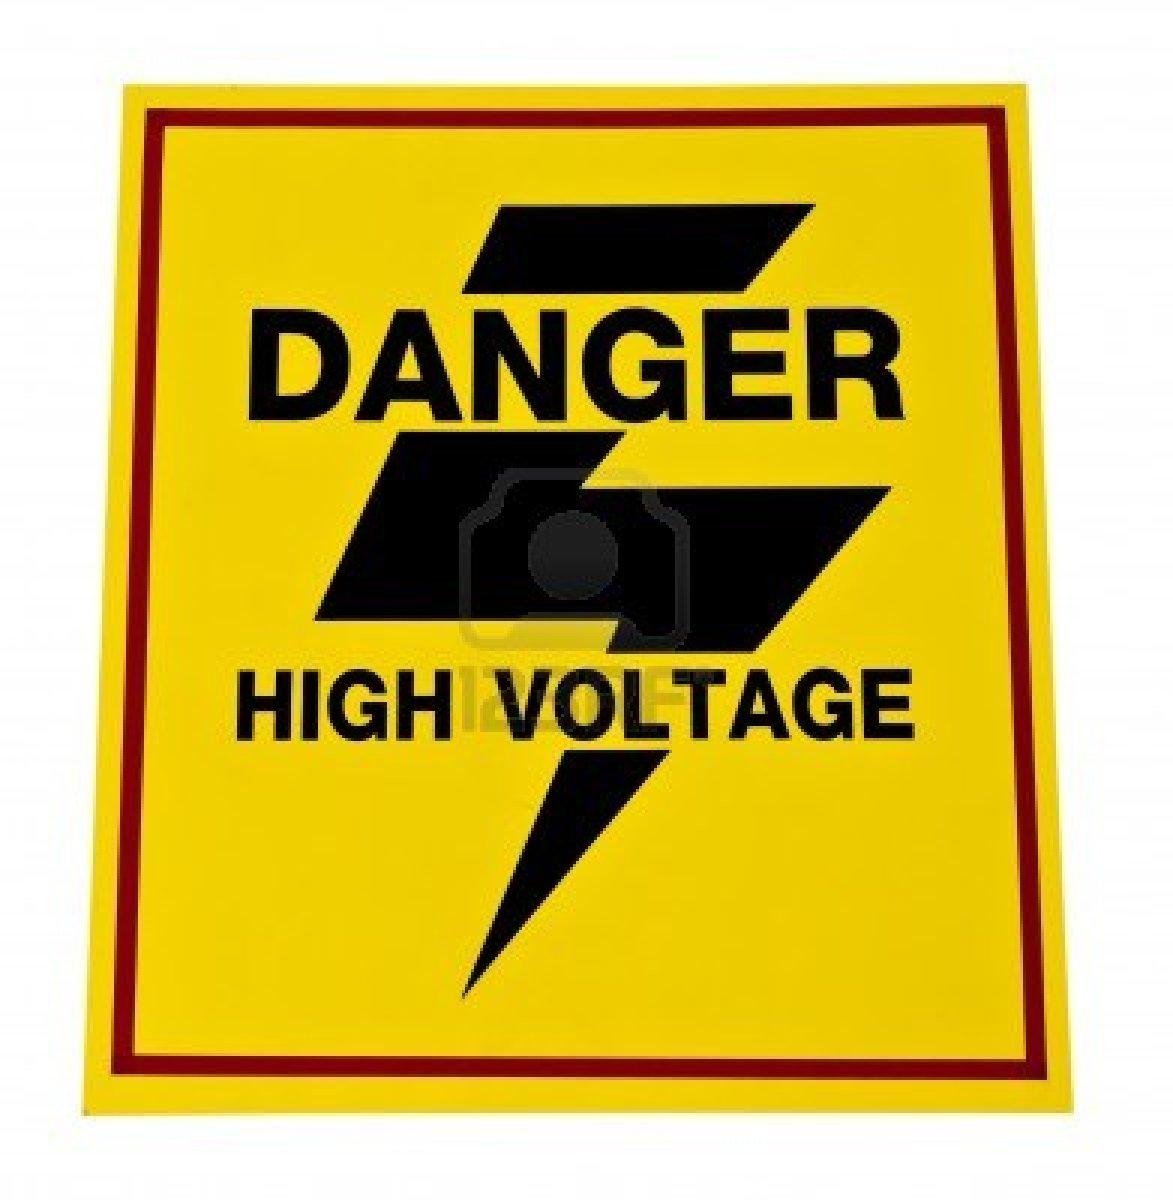 Picture of How to Make a High Capacitance High Voltage Capacitor